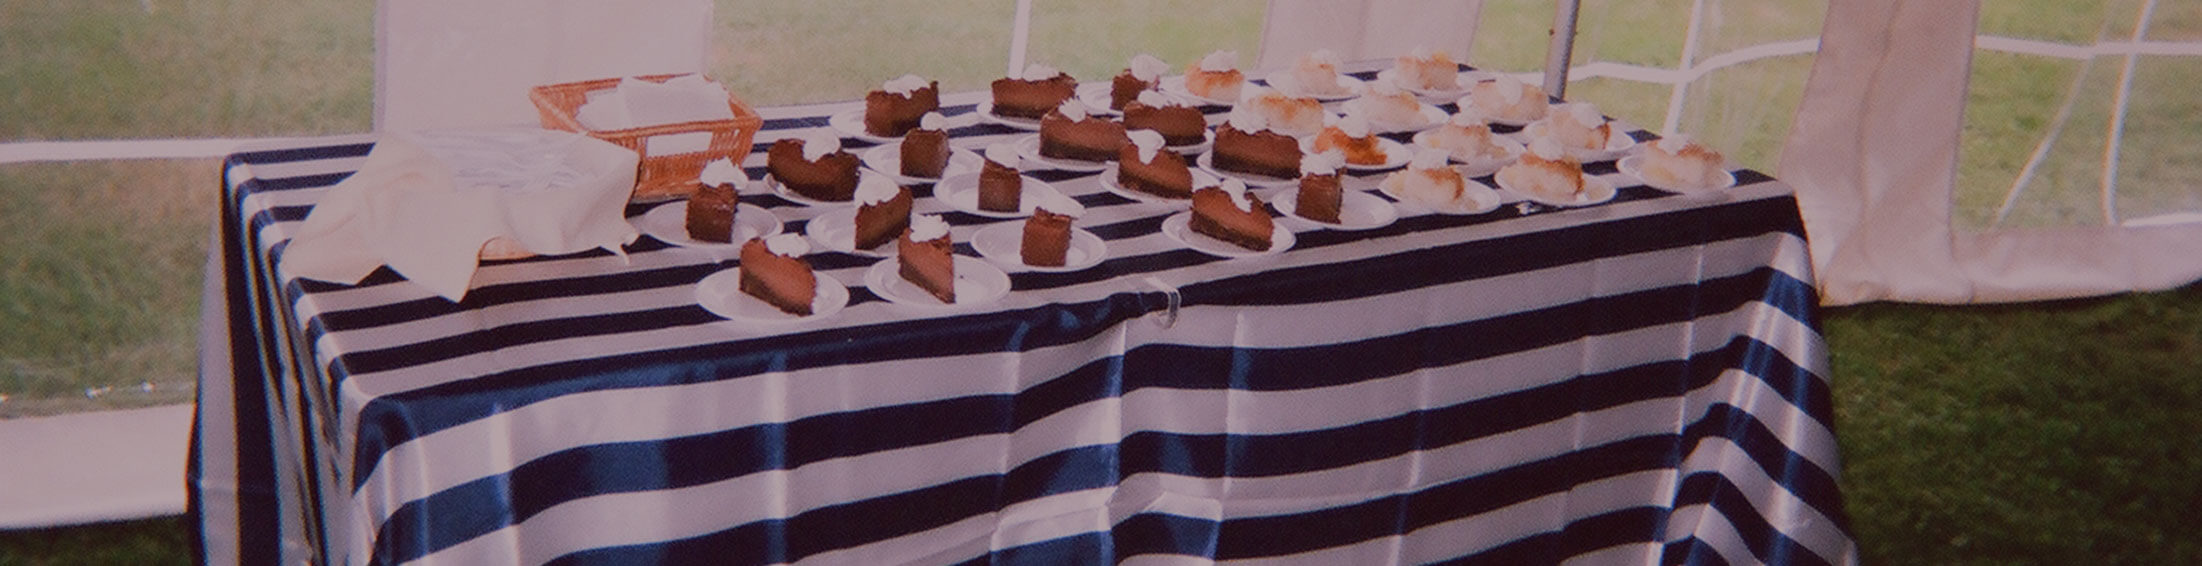 Wedding reception dessert table covered with a navy blue and white stripped tablecloth and filled with plated slices of pie